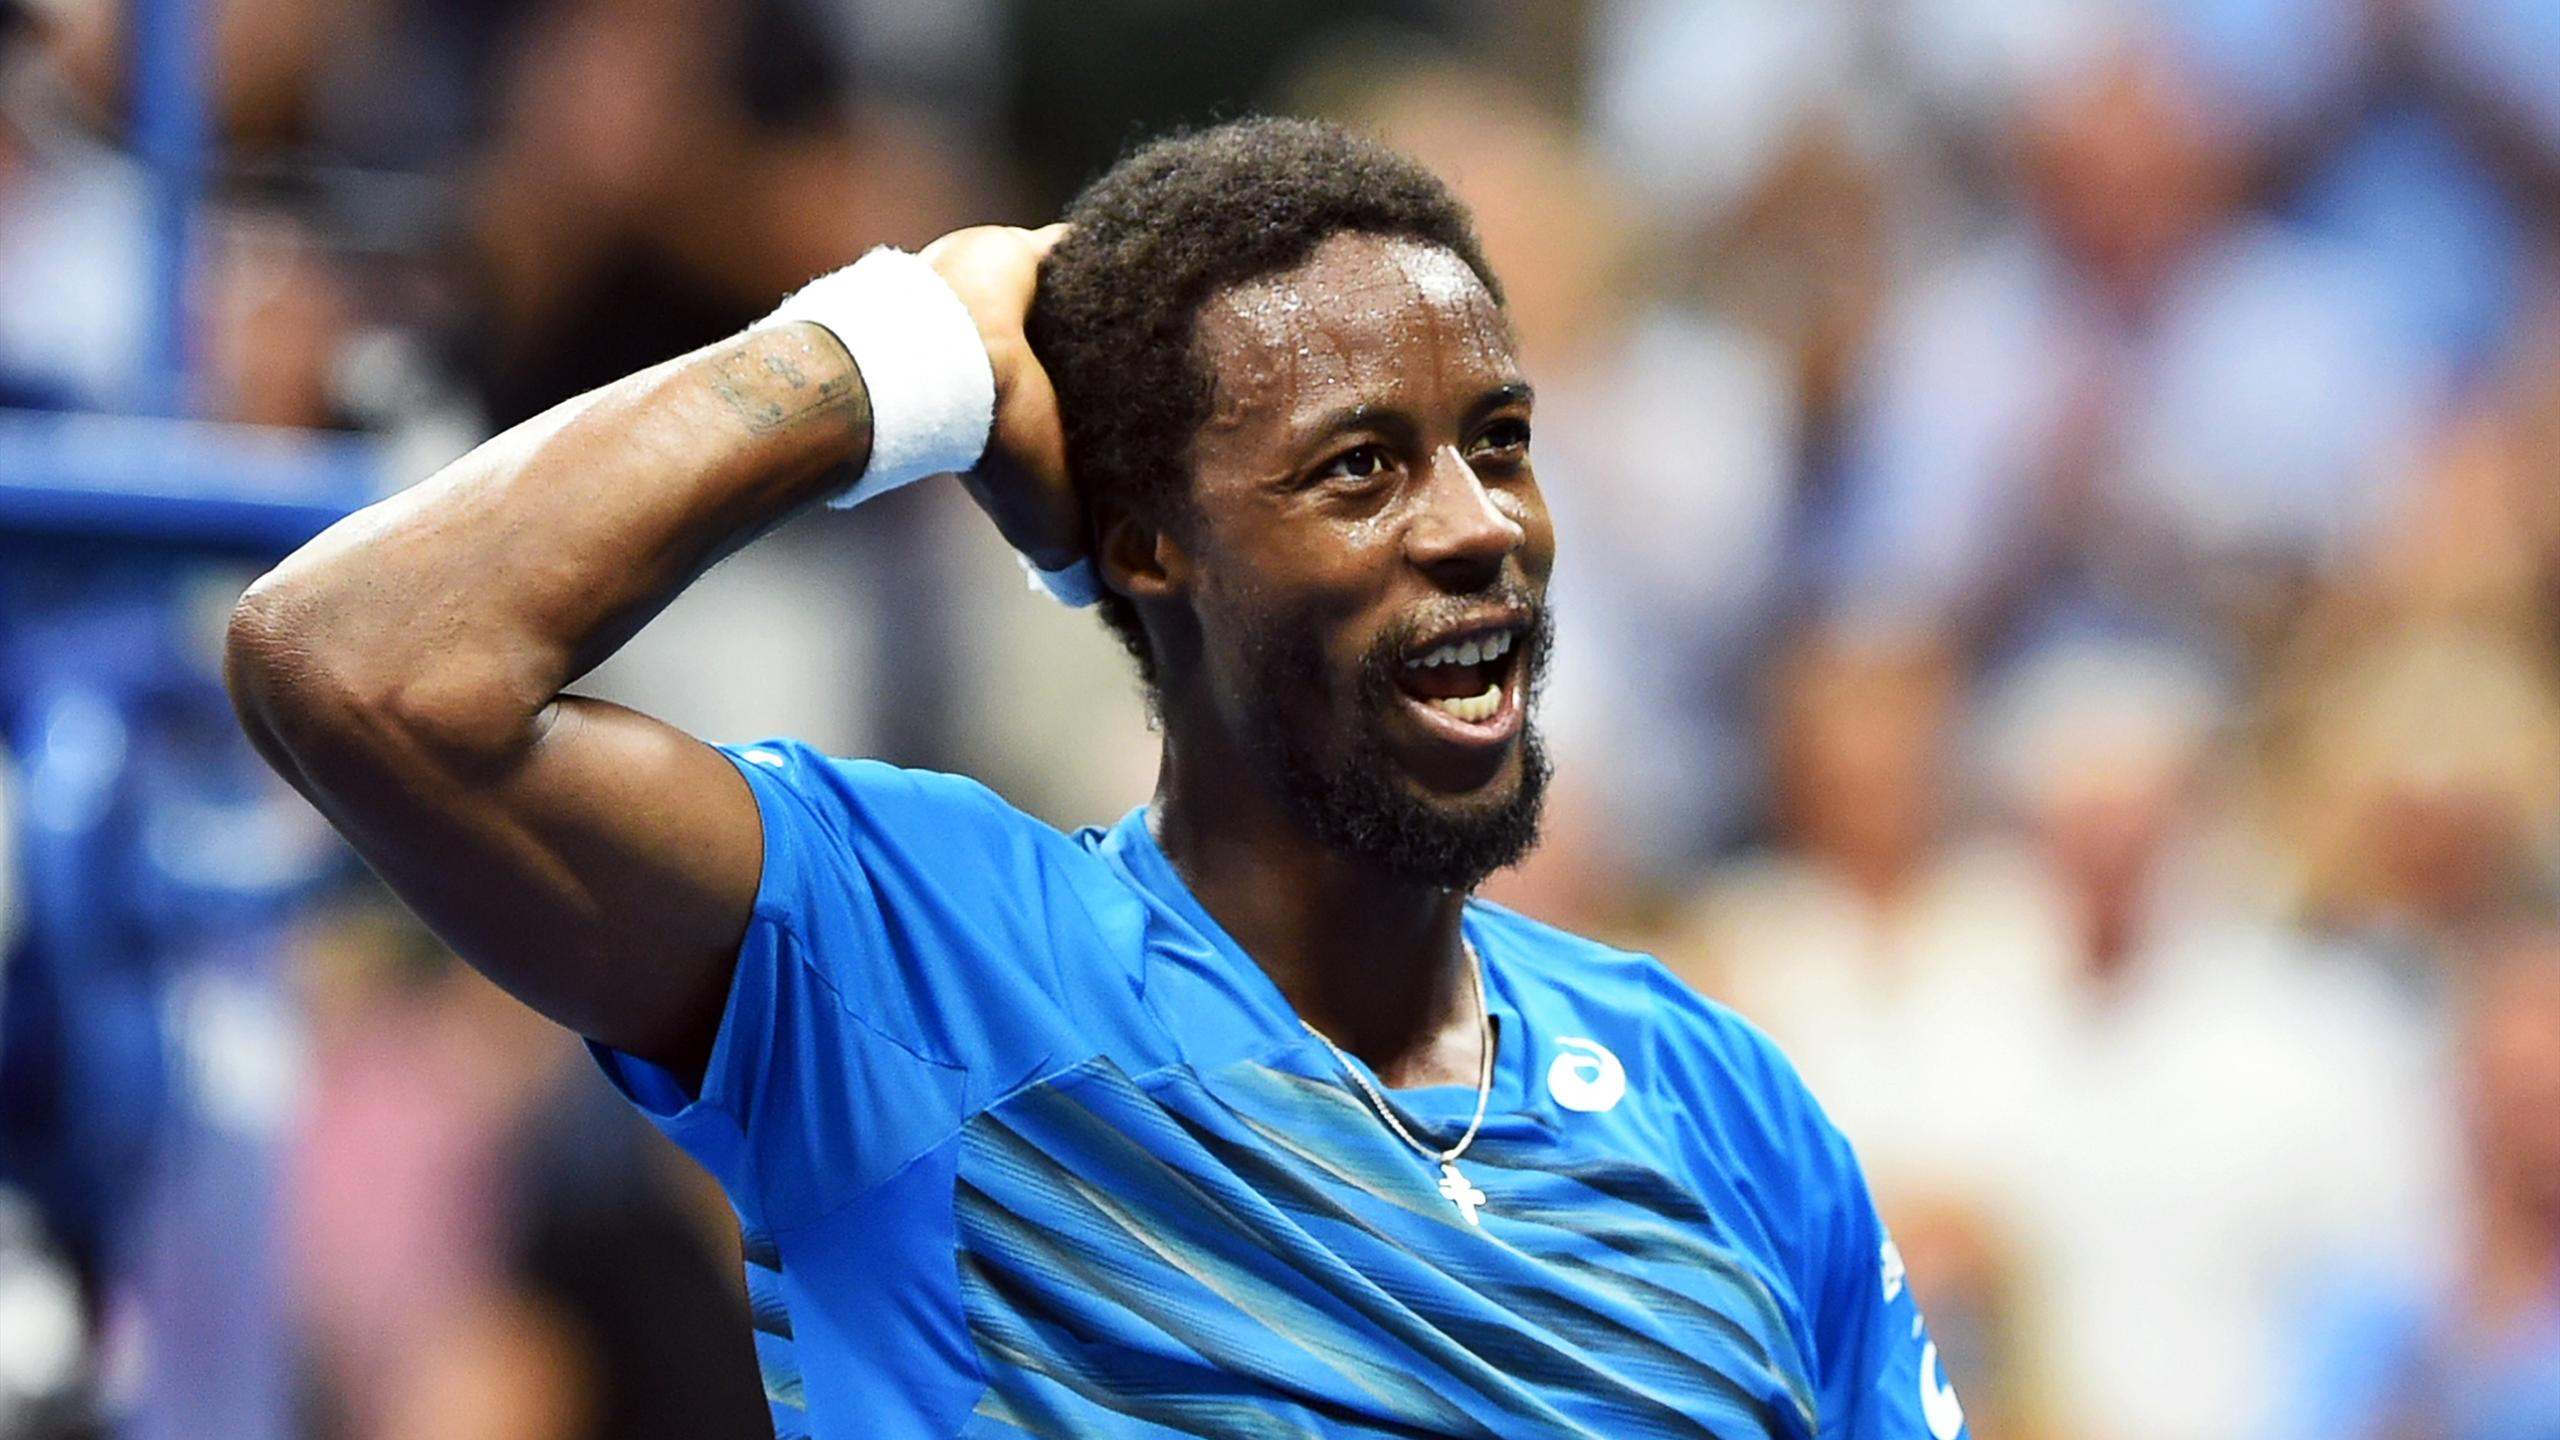 Gael Monfils of France reacts after defeating his compatriot Lucas Pouille